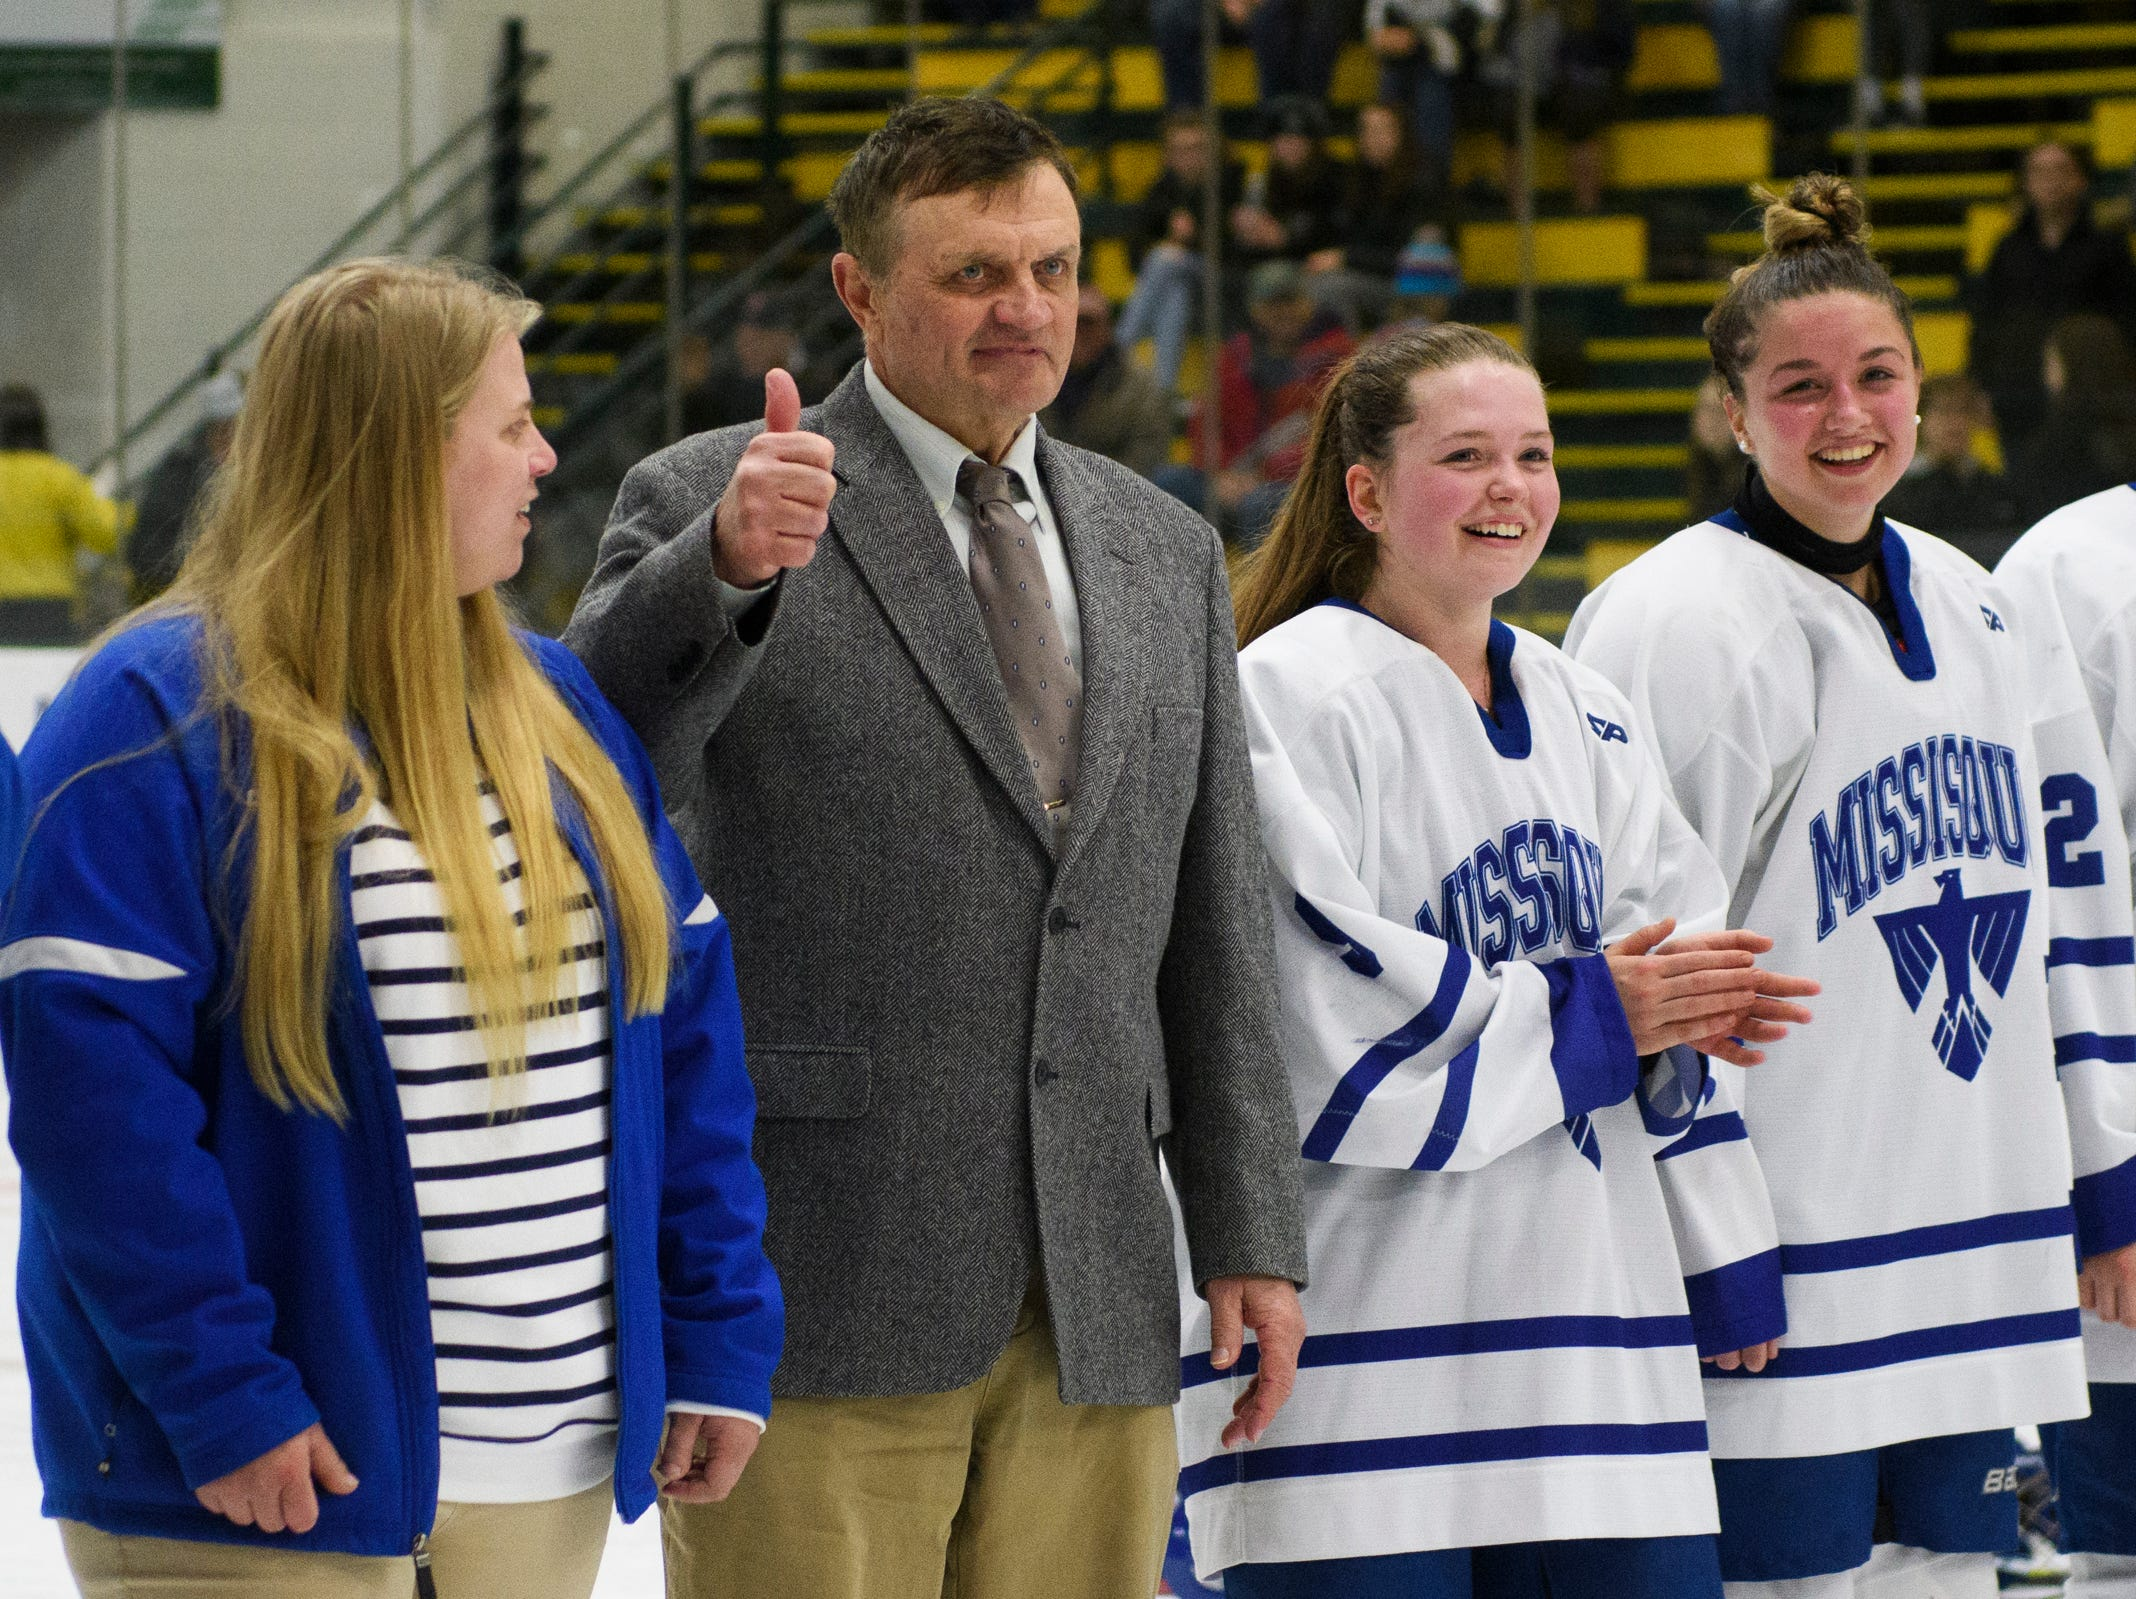 Missisquoi head coach Wynn Paradee gives the thumbs up during the DII girls hockey championship game between the Woodstock Wasps and the Missisquoi Thunderbirds at Gutterson Field House on Thursday night March 14, 2019 in Burlington, Vermont.